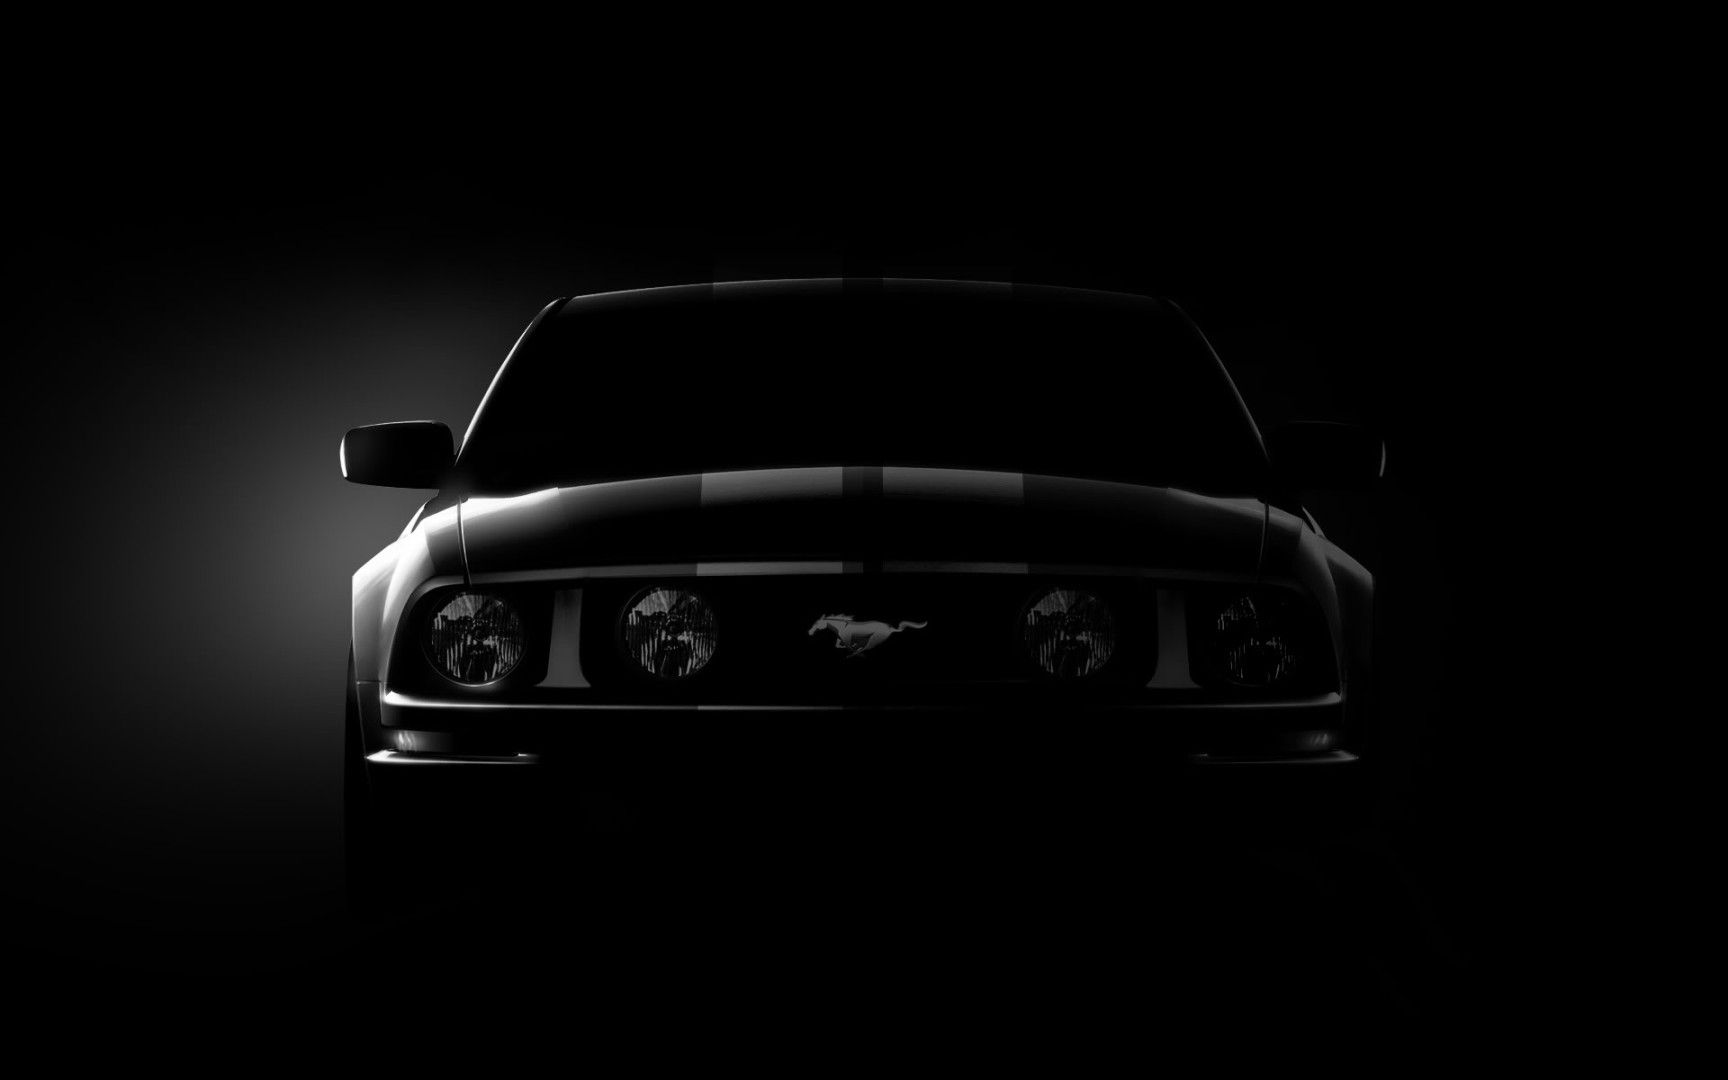 Hd Flat Black Muscle Car Wallpapers Ford Mustang Black Background Wallpaper Ford Mustang Gt